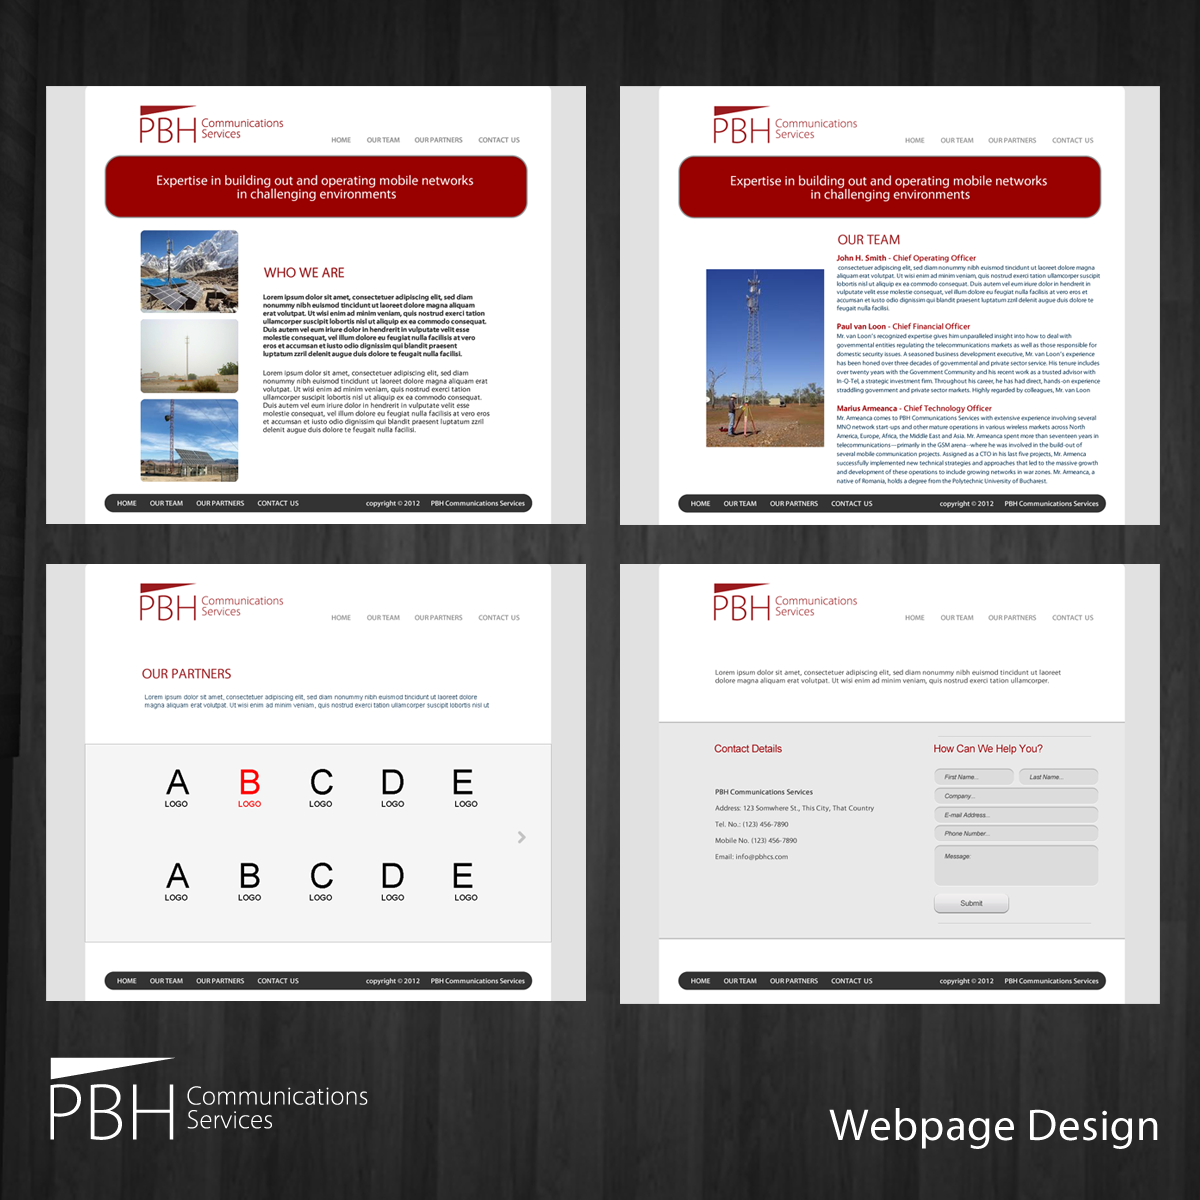 Web Page Design by storm - Entry No. 64 in the Web Page Design Contest New Web Page Design for PBH Communications Services.